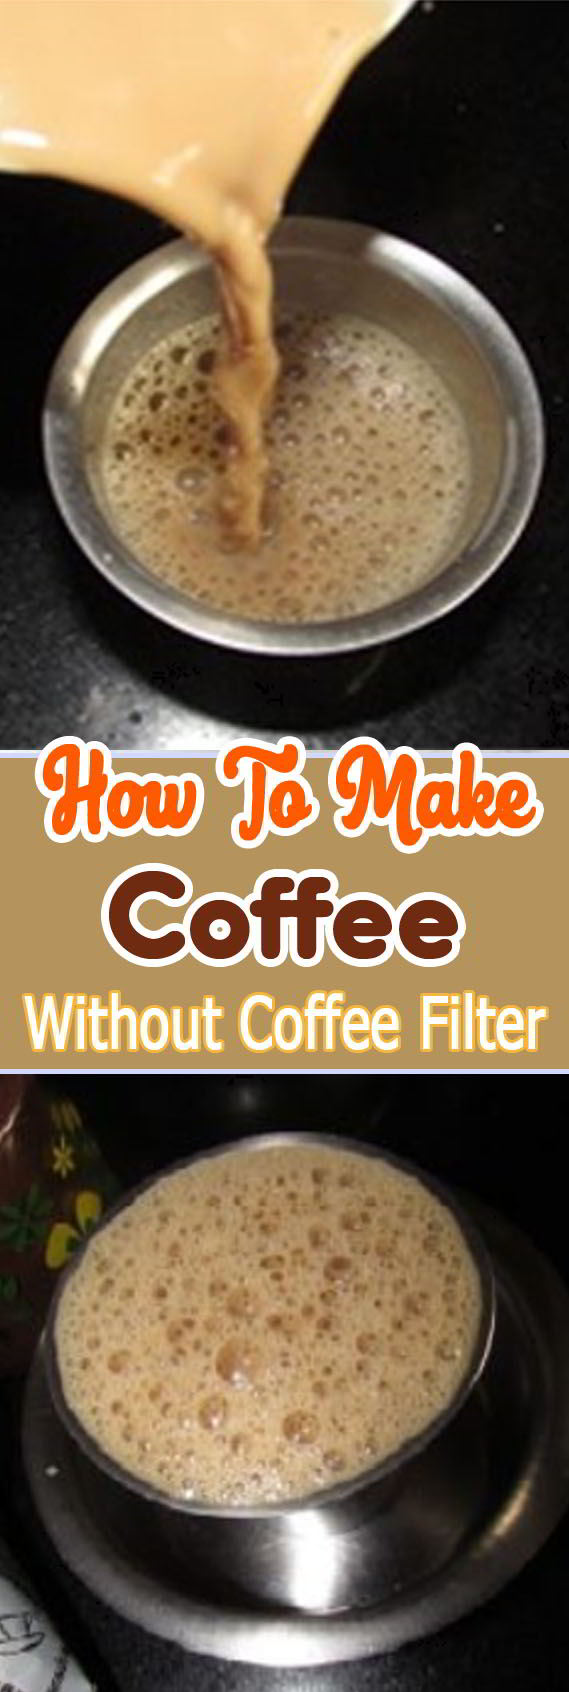 How to Make Coffee without coffee filter